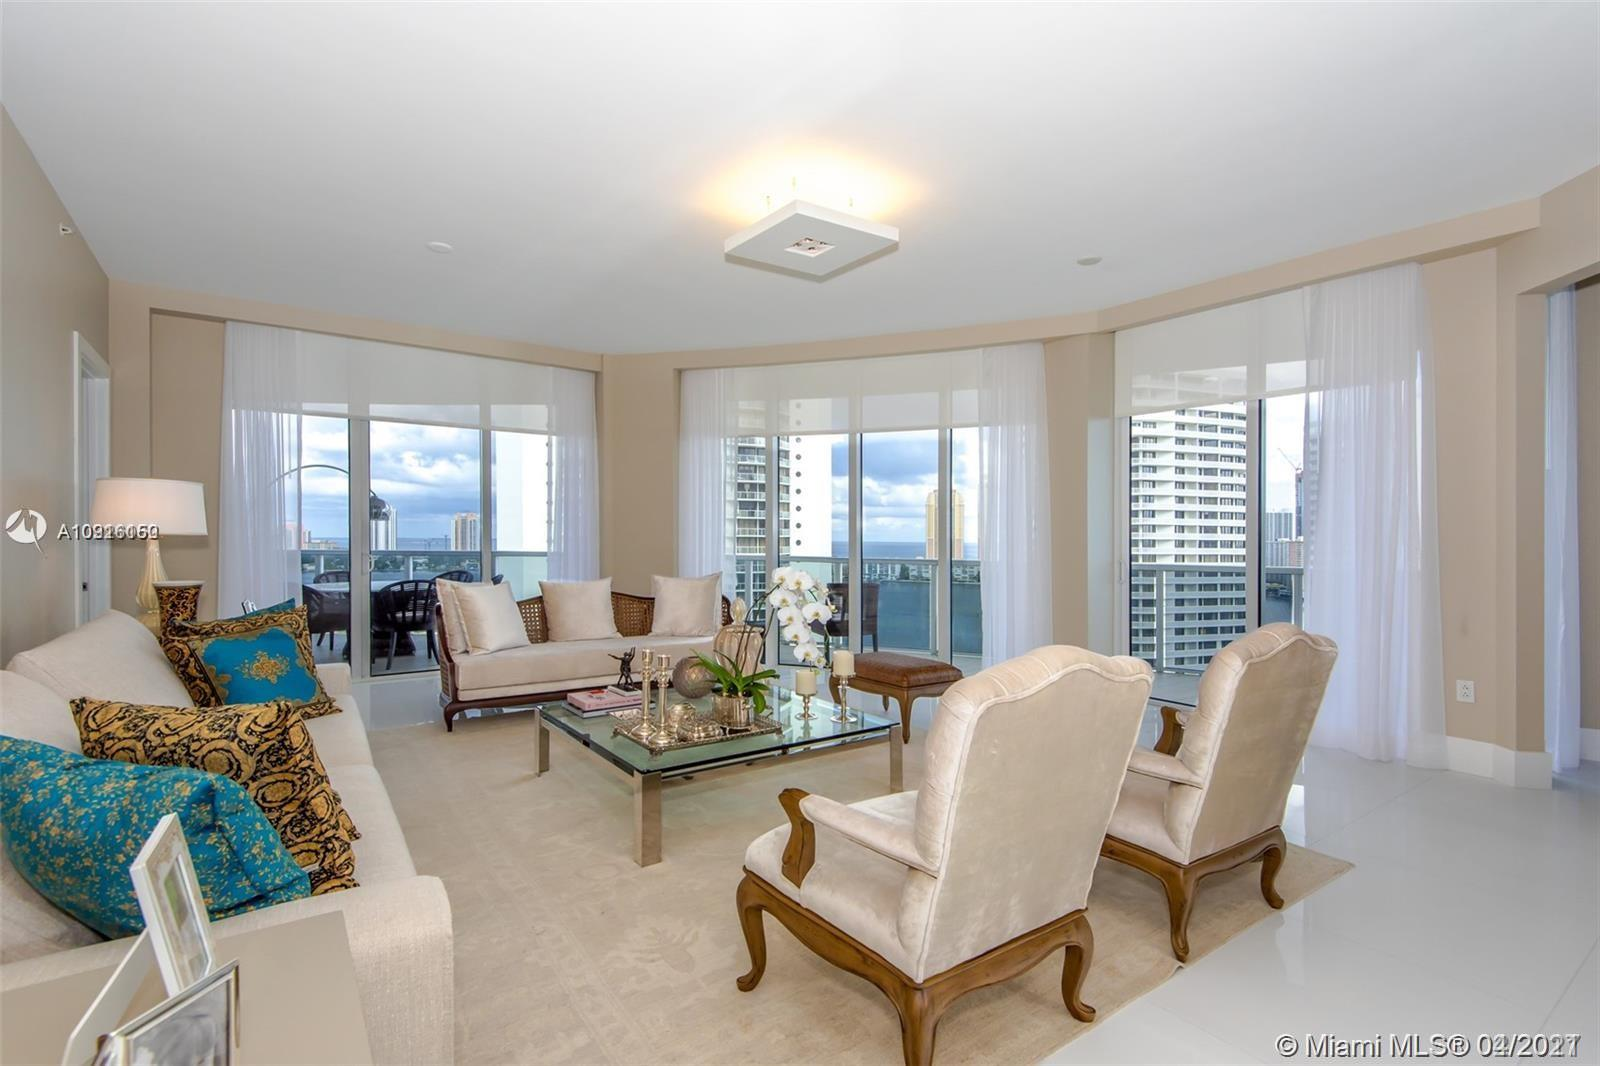 Spectacular 3 bedrooms and 3.5 baths overlooking the intracoastal and the City skyline, professionally furnished, white large stone floors thought out the entire unit, open kitchen ,Built in walk in Closets, large balconies,Impact windows all around, Private Foyer,Private elevators, Enjoy the Williams Island Luxurious Life Style... 2 Restaurants, Tennis, Marina, Fitness Center, Indoor and Outdoor Swimming Pool,Sauna, Beaty Saloon... 24 HRS Security and Valet, The Best Views of the Island...